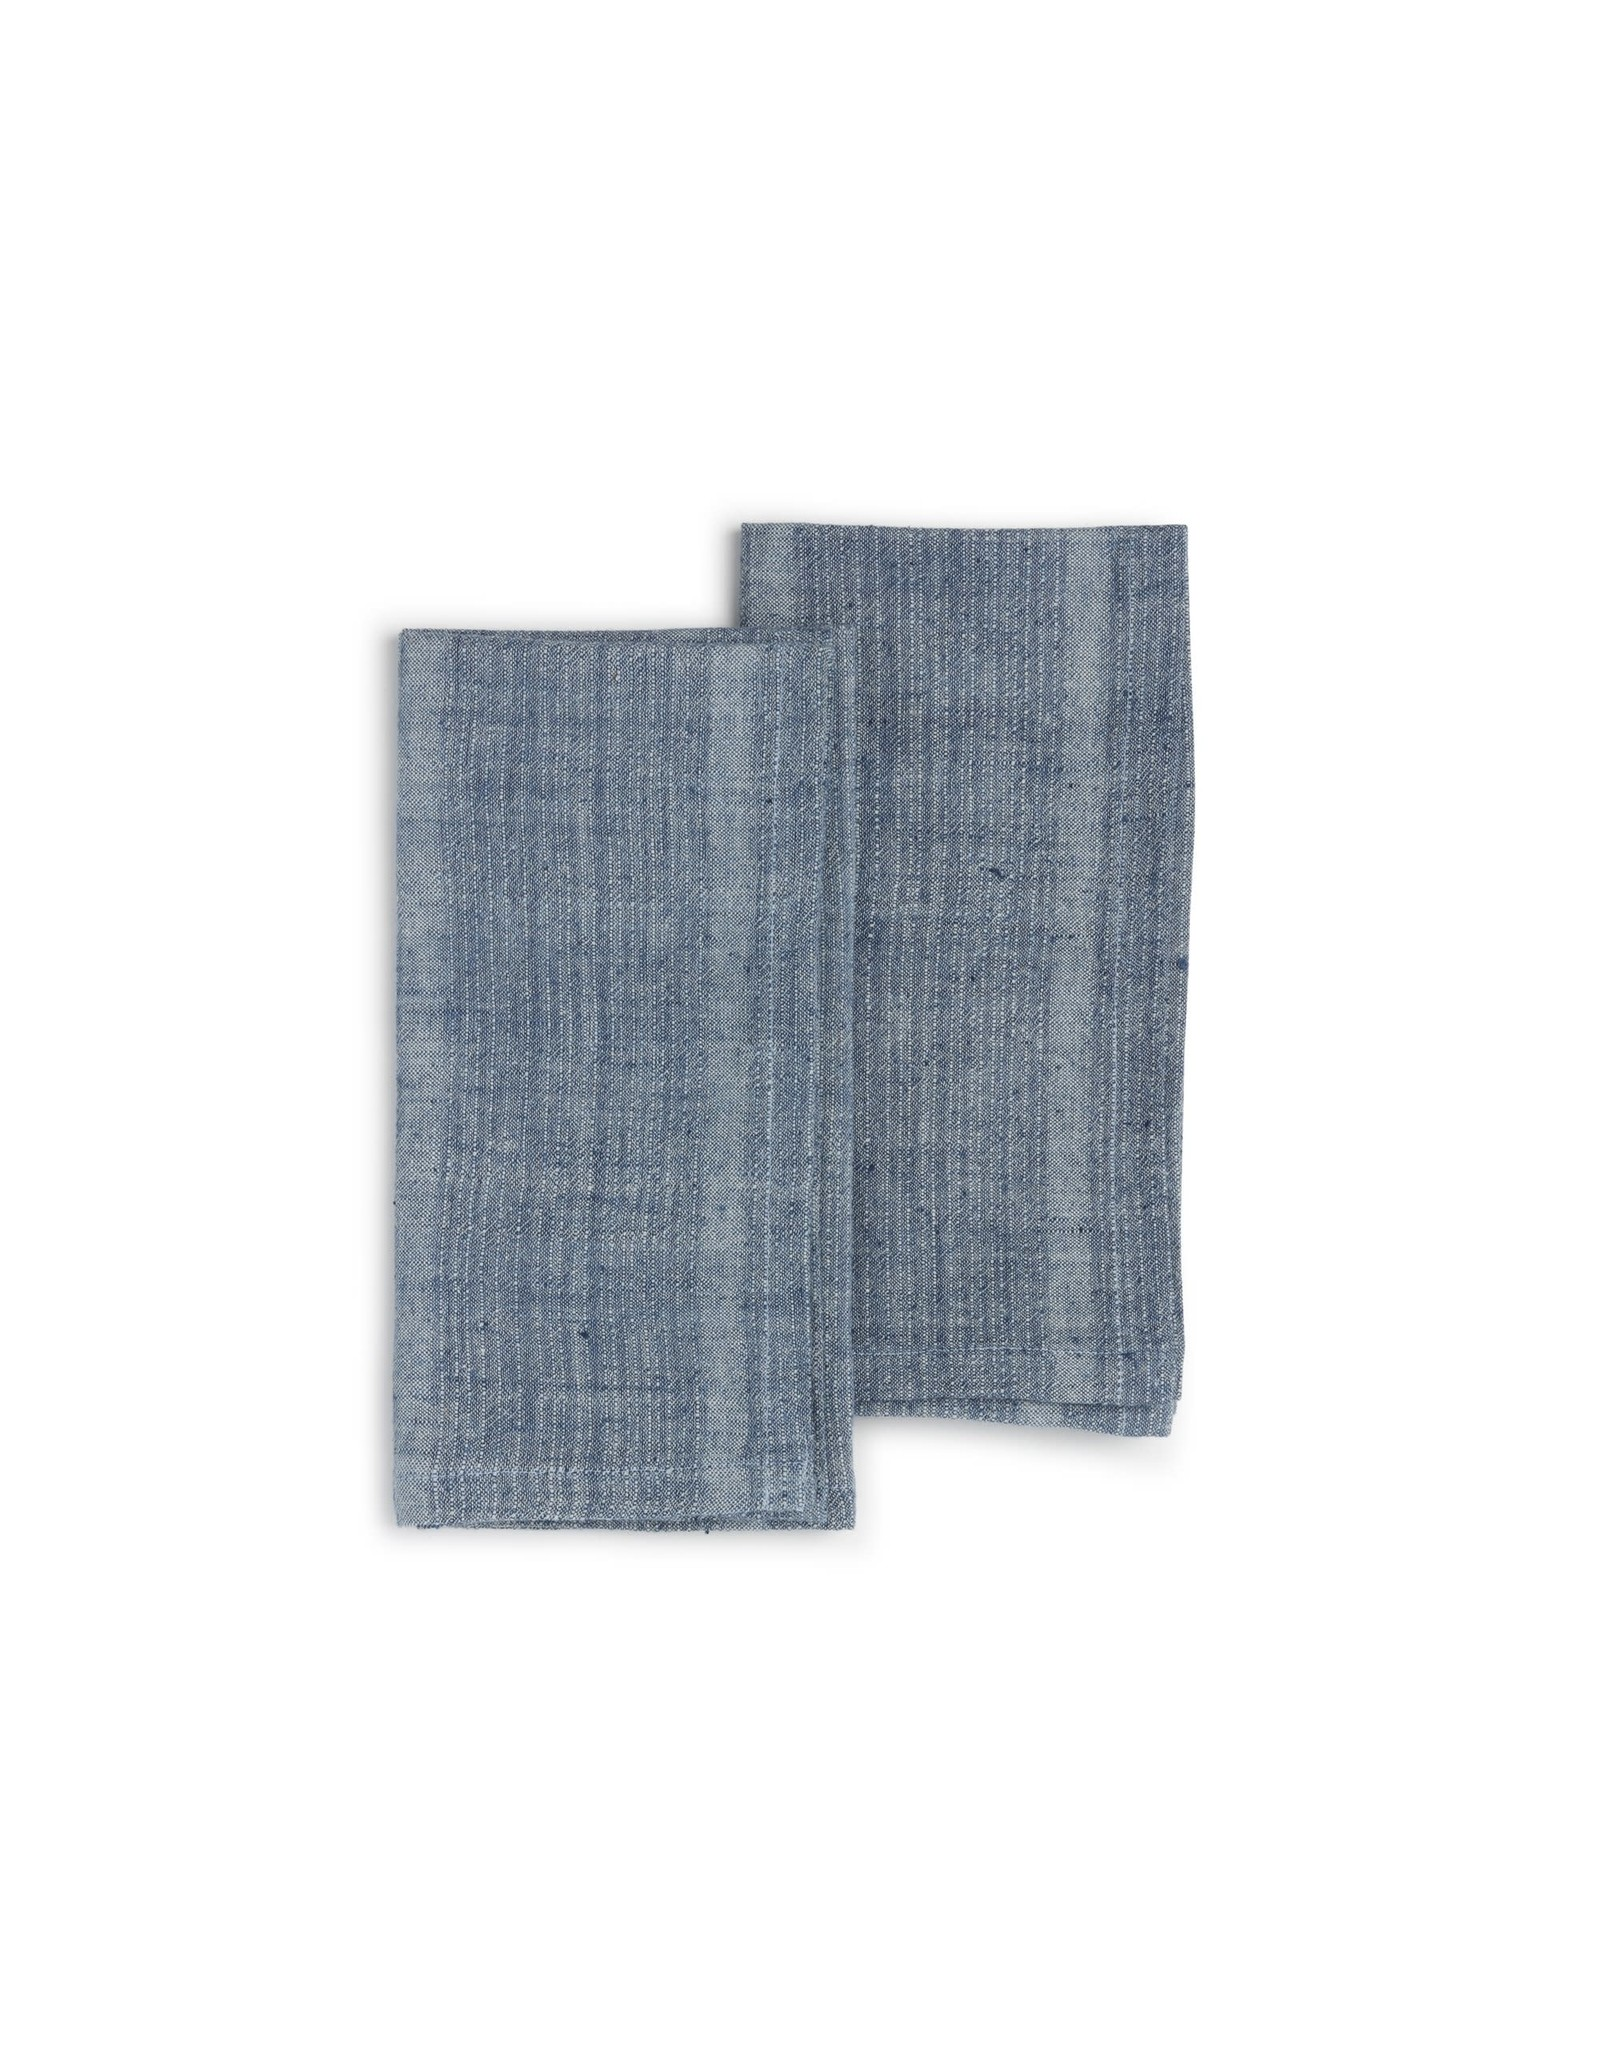 India, 20 x 20 Organic Cotton, Natural Dye Set of 2 Indigo Sea